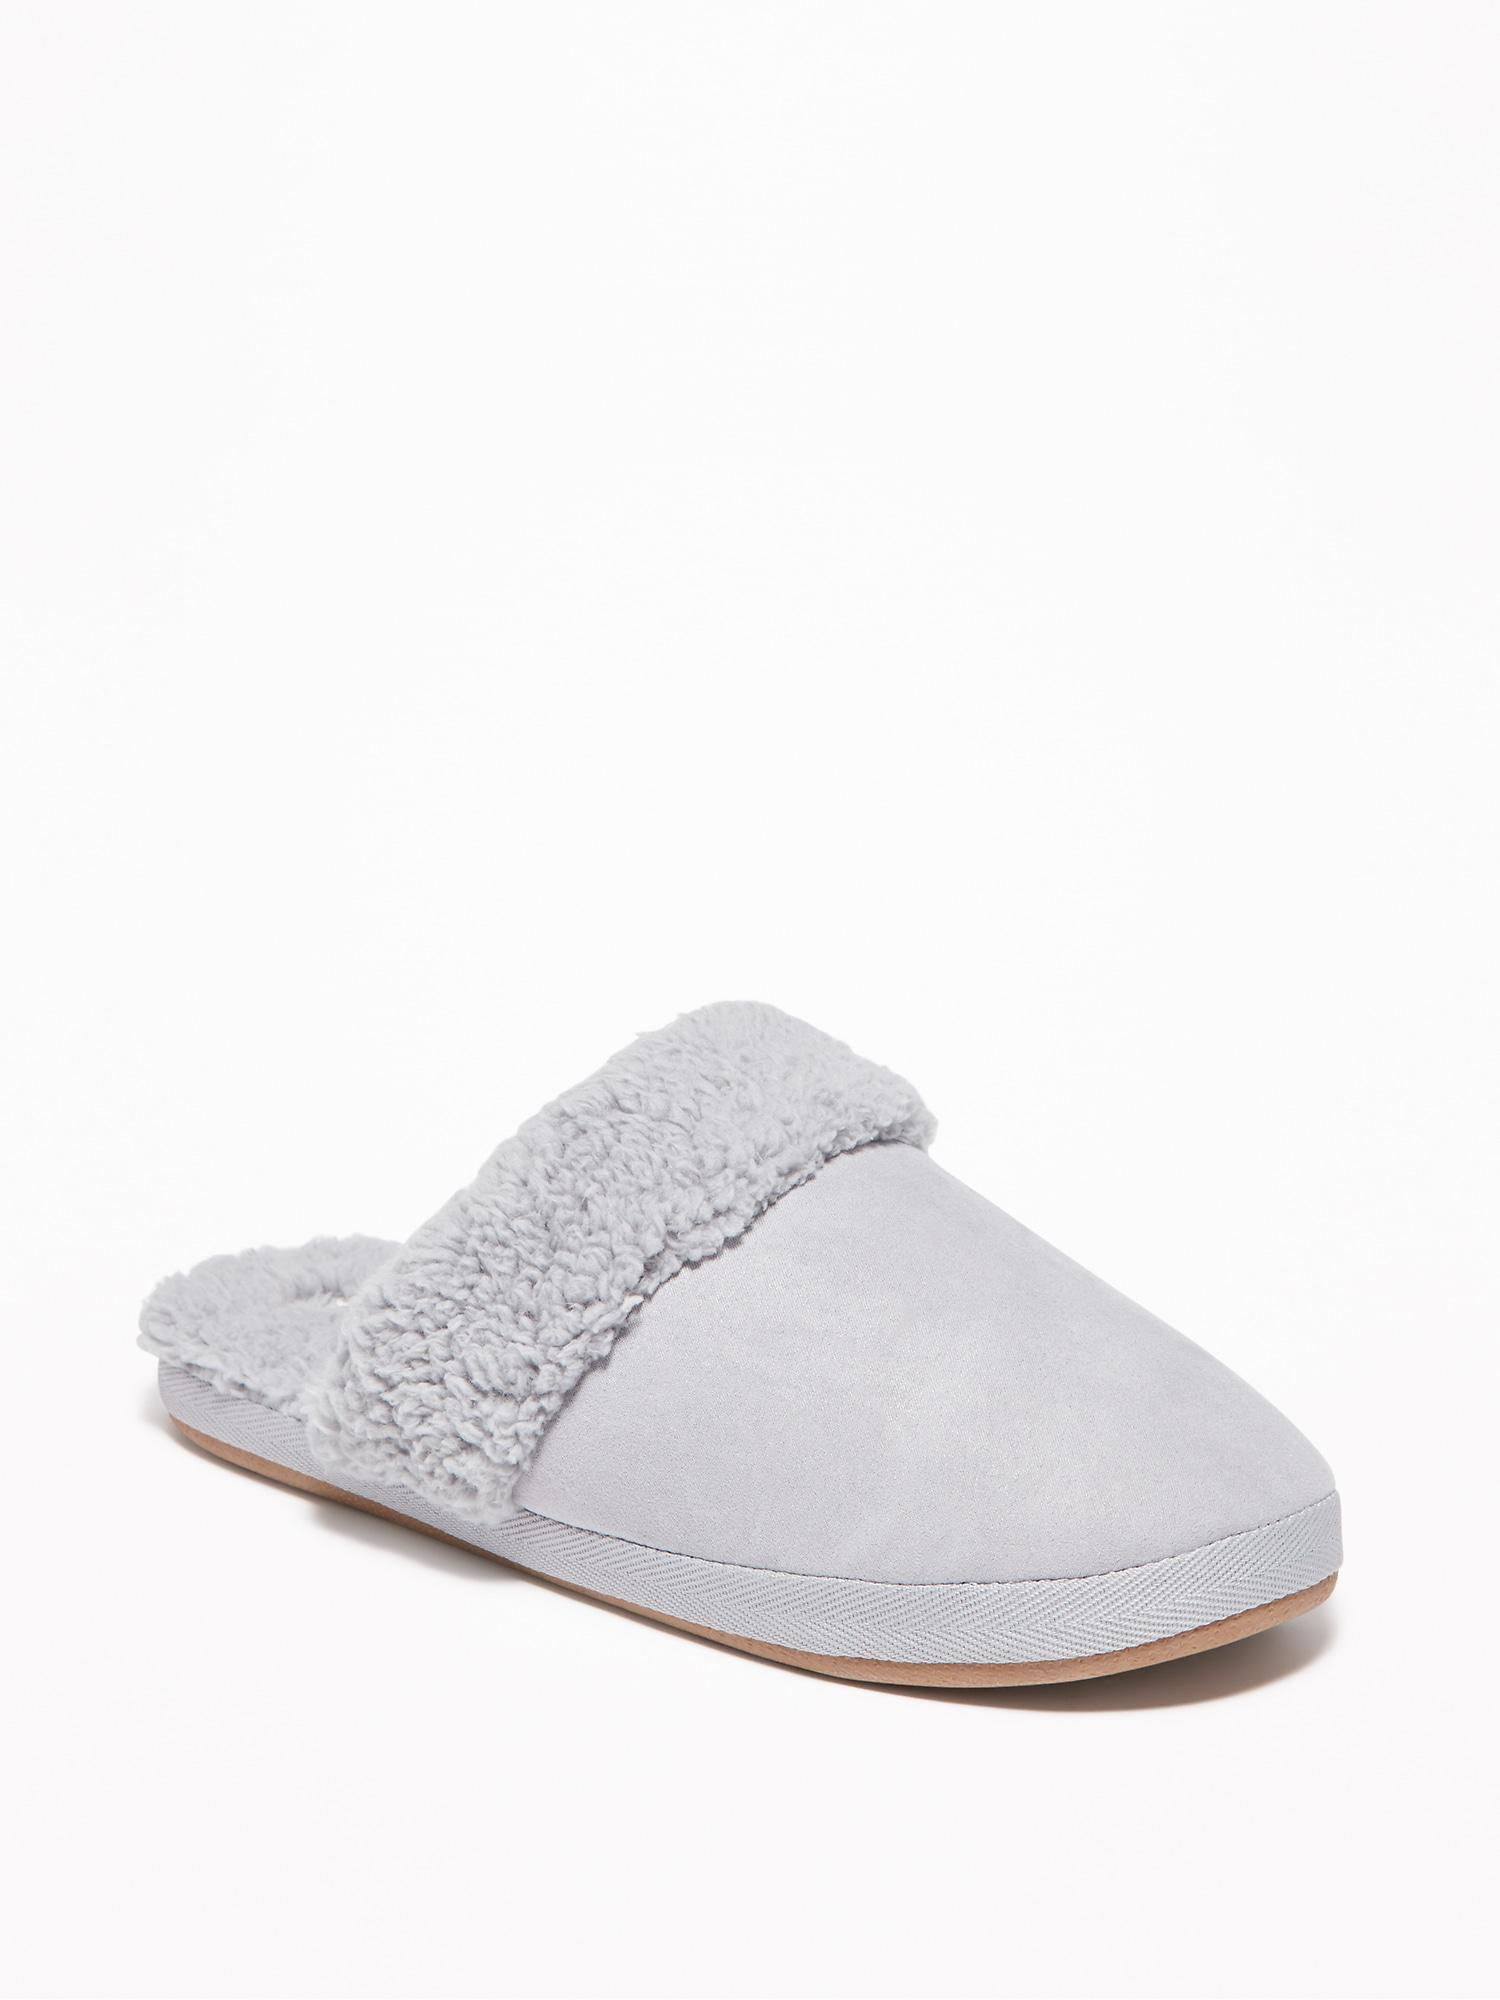 4a957e604de63 Lyst - Old Navy Faux-suede Sherpa-lined Slide Slippers in Gray